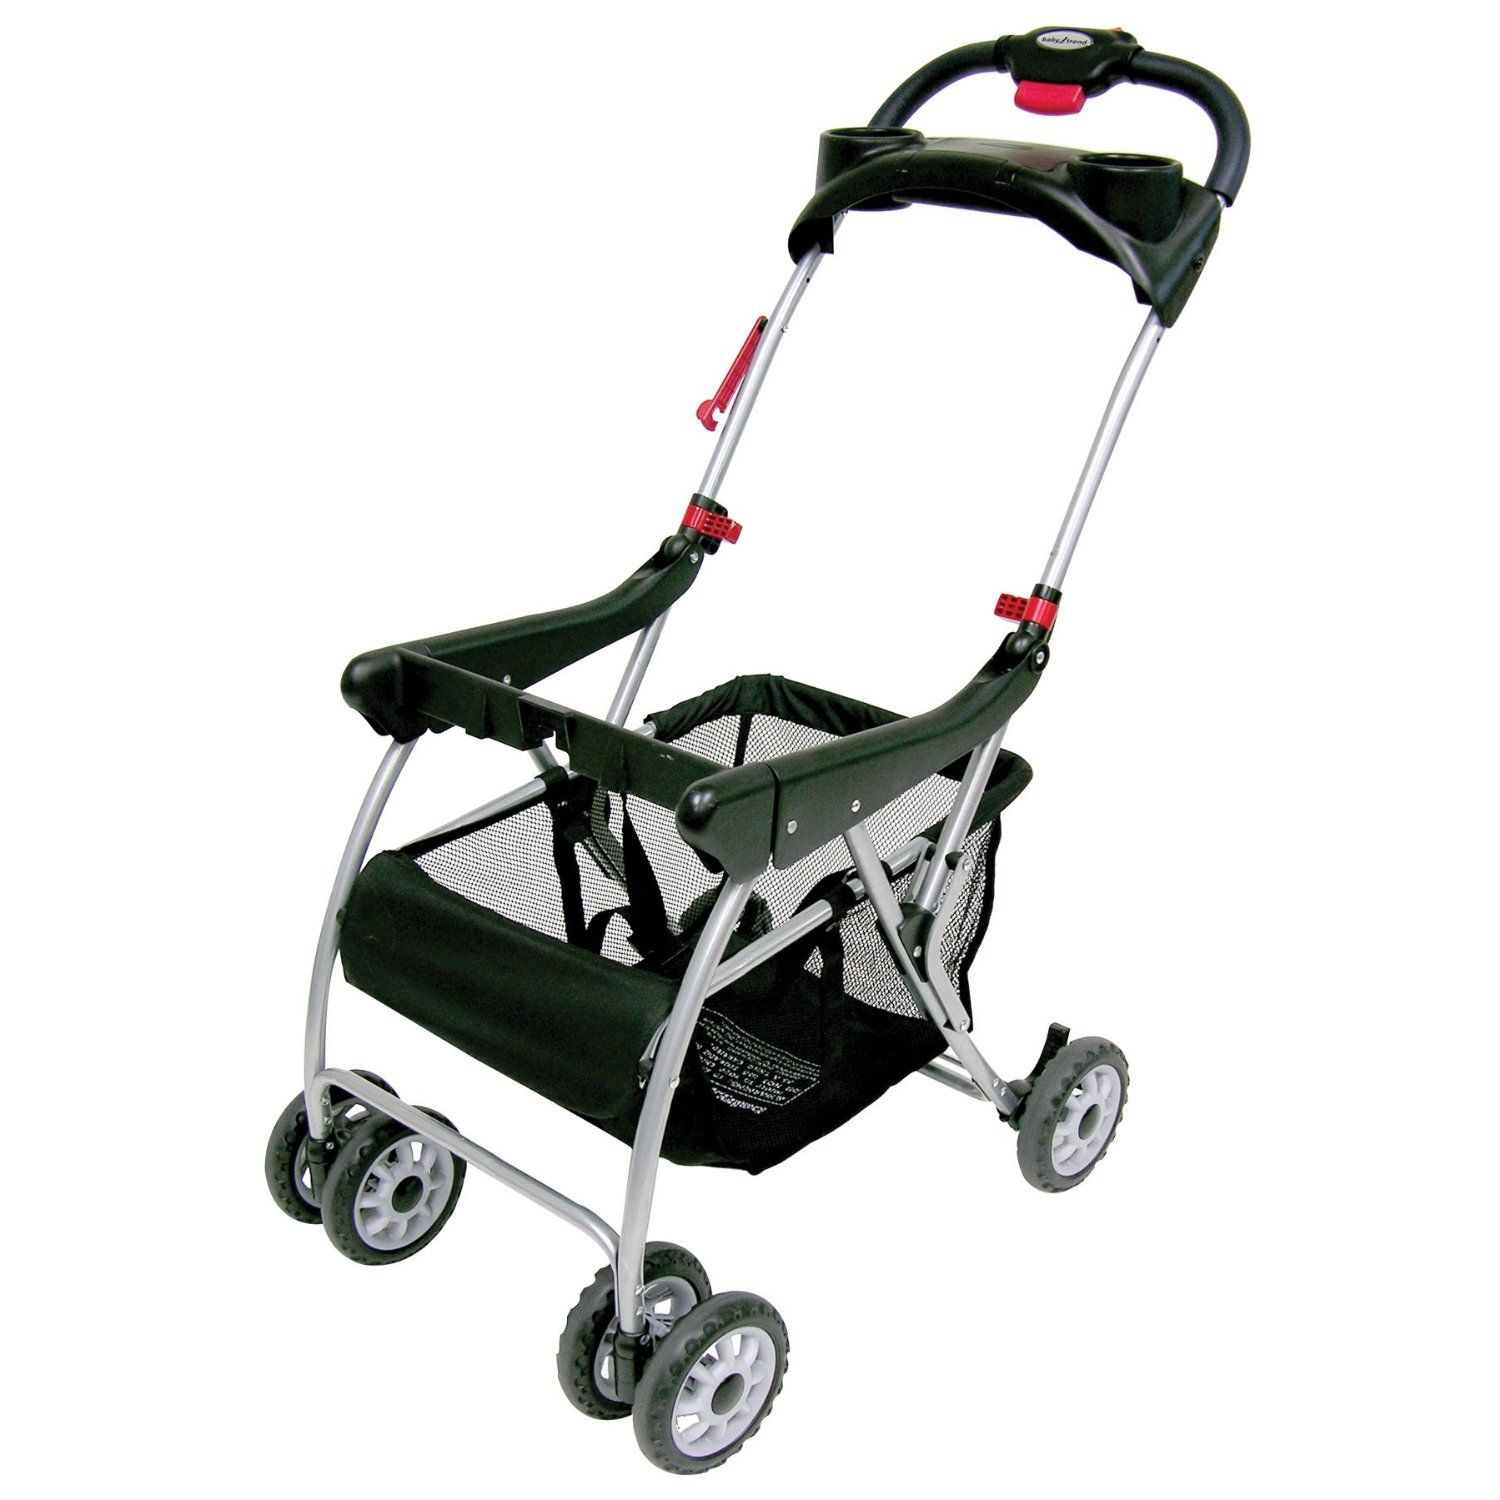 Baby Trend Snap N Go Stroller. Light weight frame to